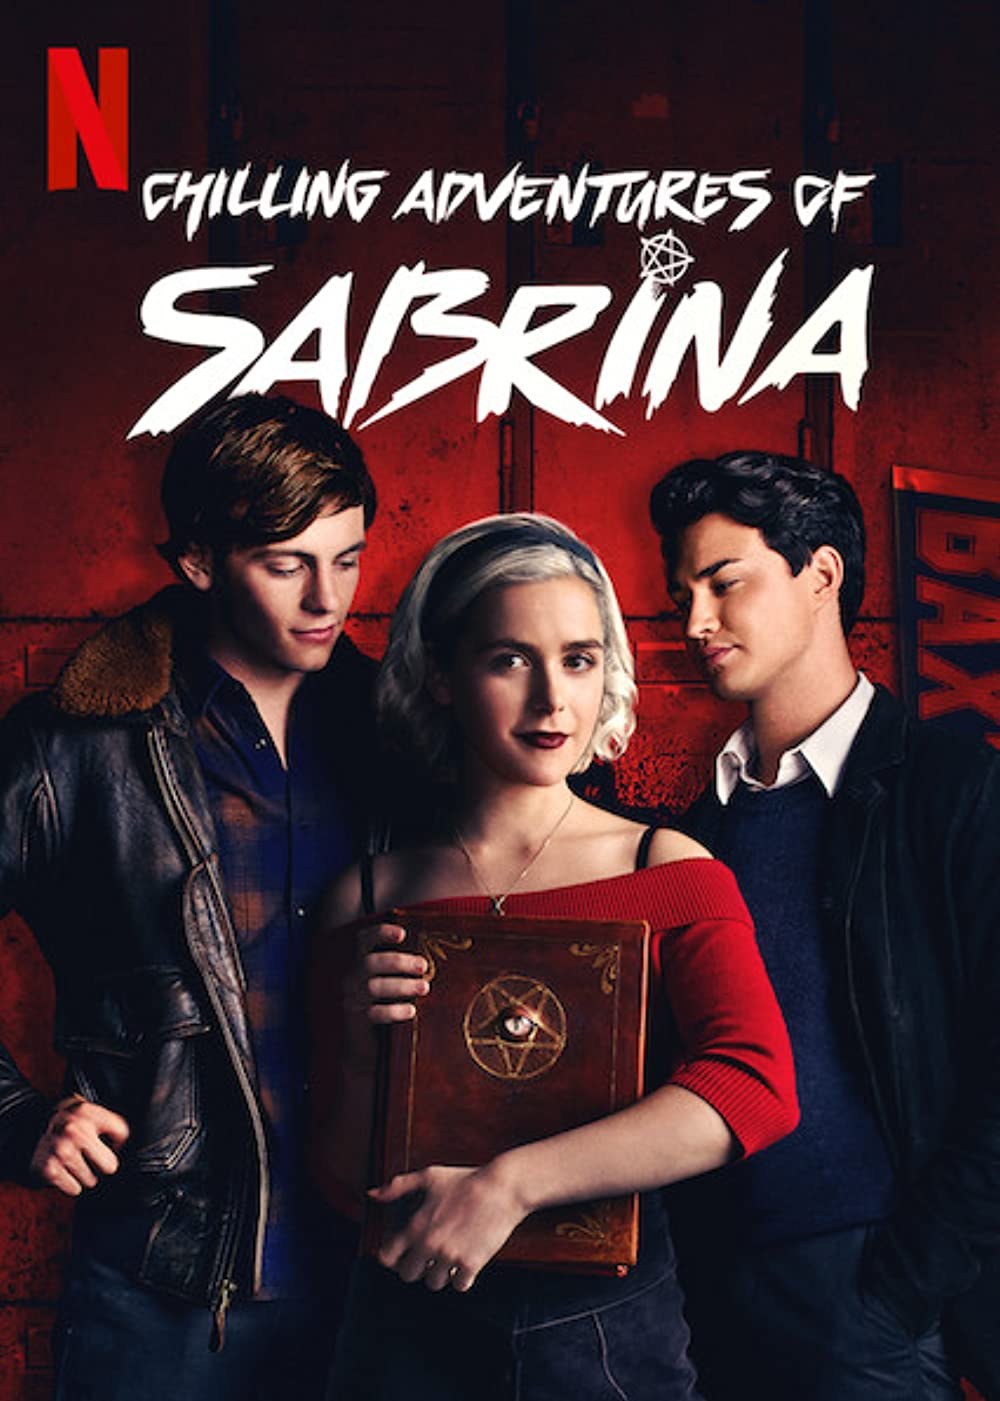 Chilling Adventures of Sabrina S04 2020 Hindi Complete Netflix Web Series 1.5GB HDRip Download